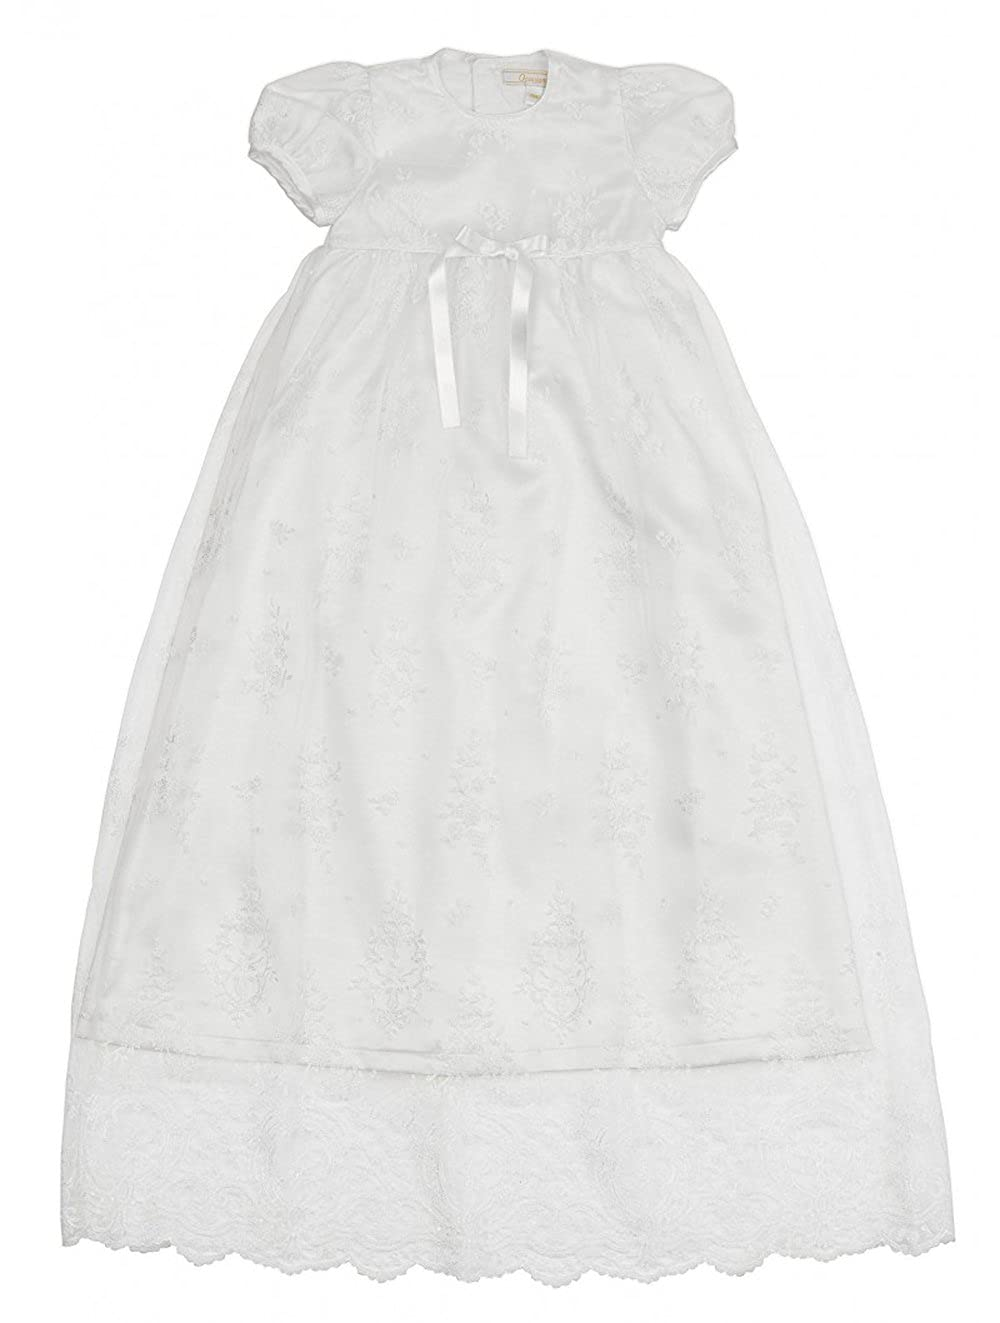 Kelaixiang Baby Girls Dresses Christening Baptism Gowns Formal Dress